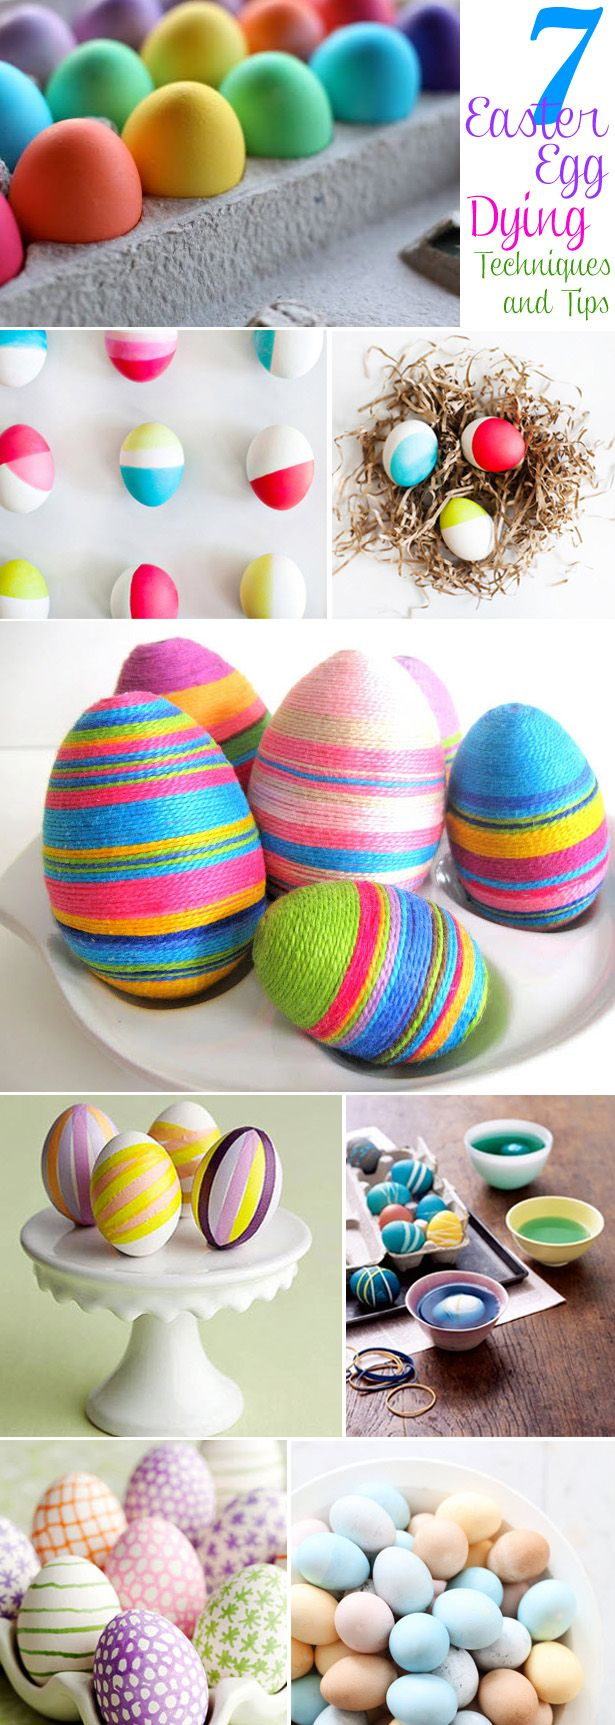 7 Easter Egg Dying Tips